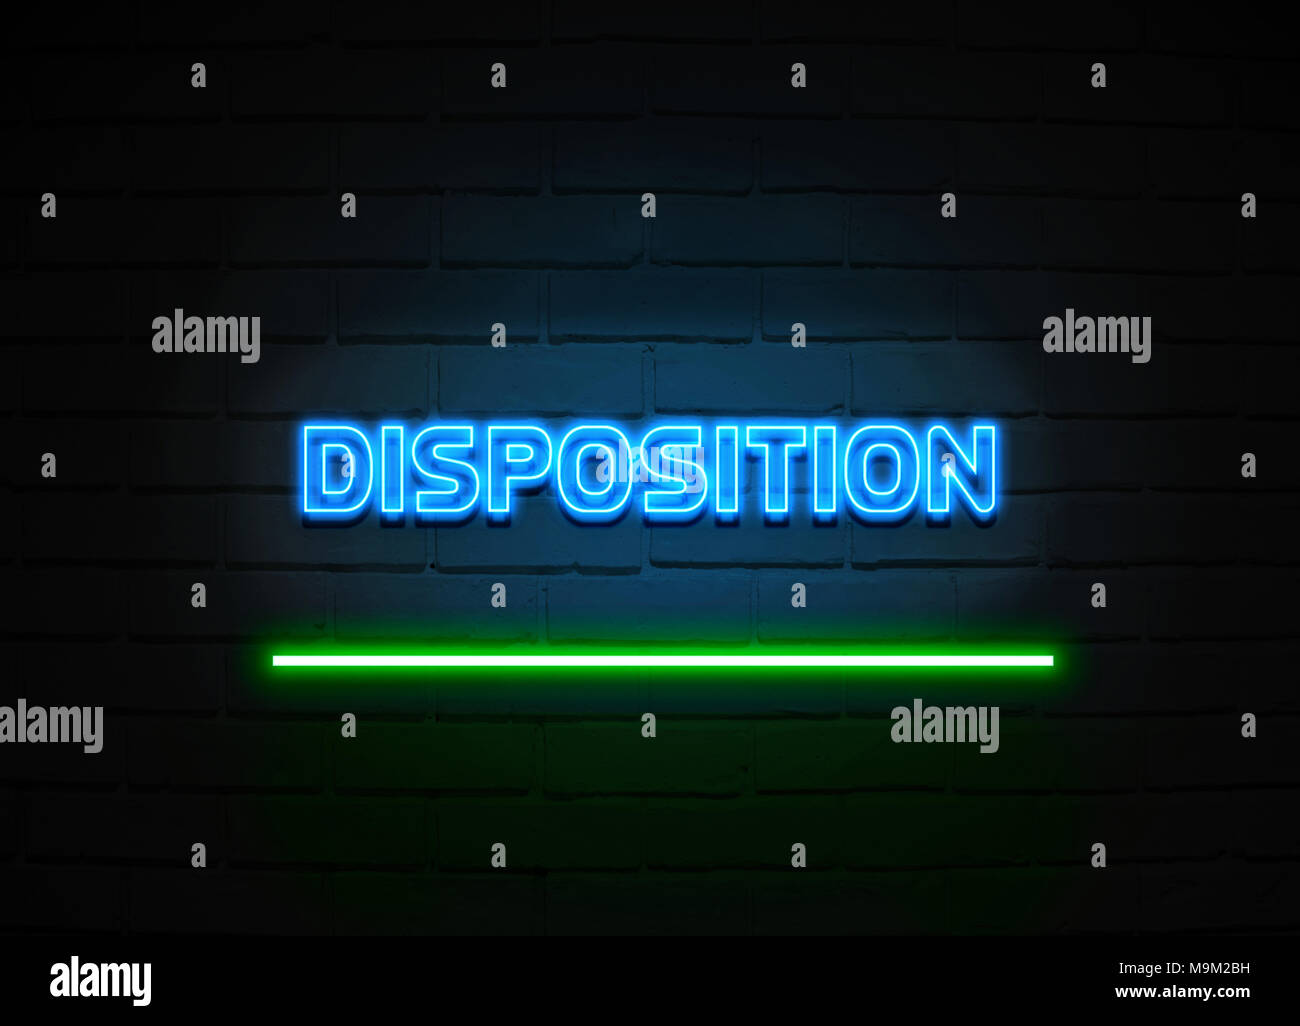 Disposition neon sign - Glowing Neon Sign on brickwall wall - 3D rendered royalty free stock illustration. - Stock Image